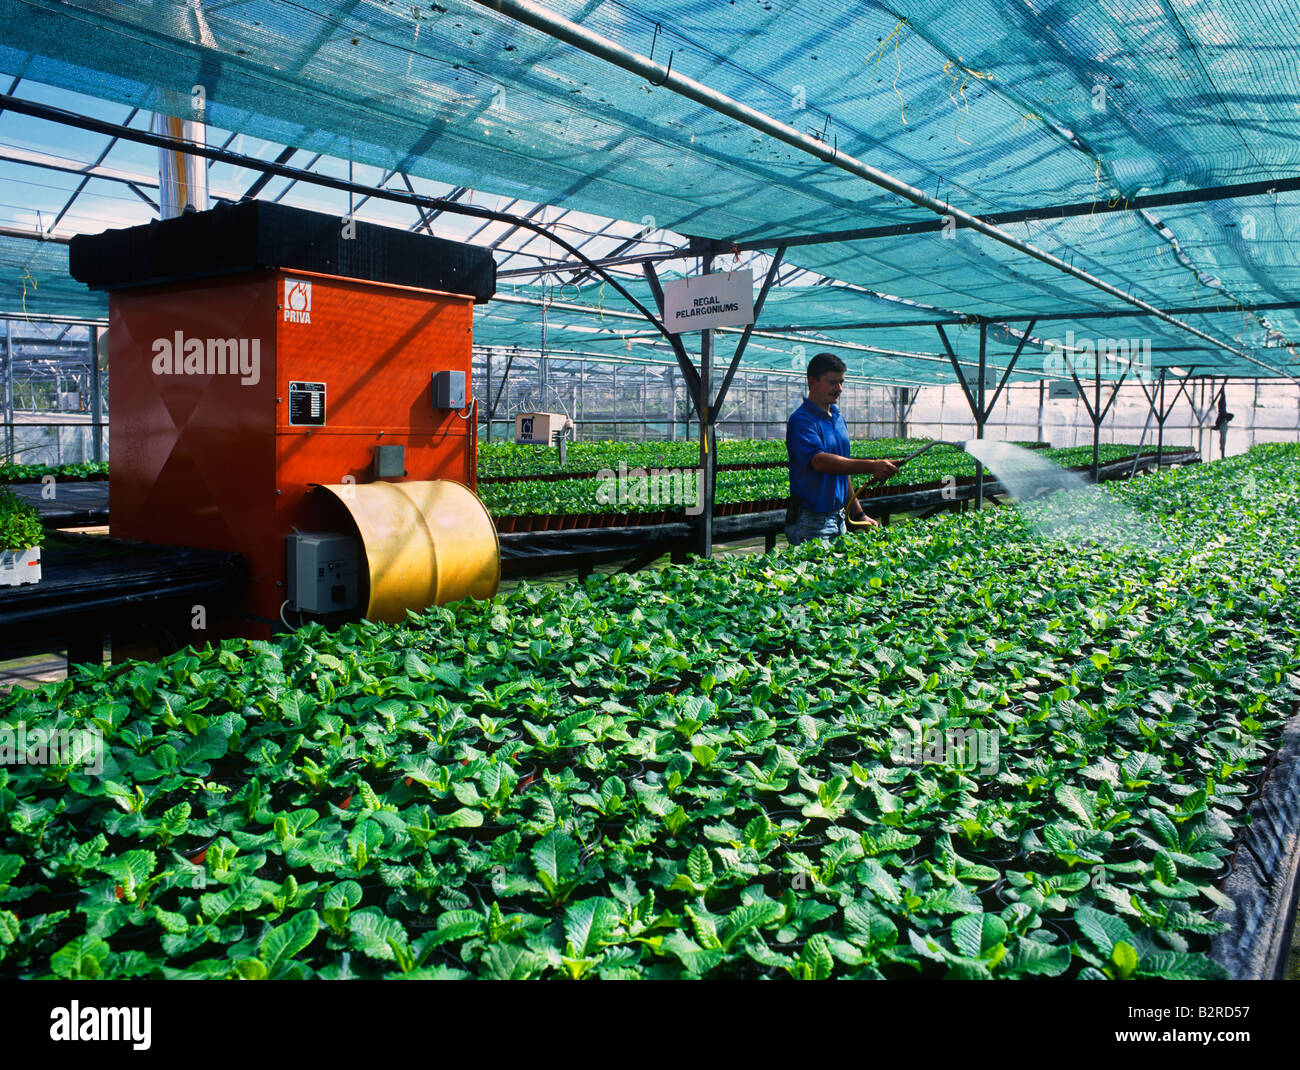 Gardener watering plants in a polytunnel. - Stock Image